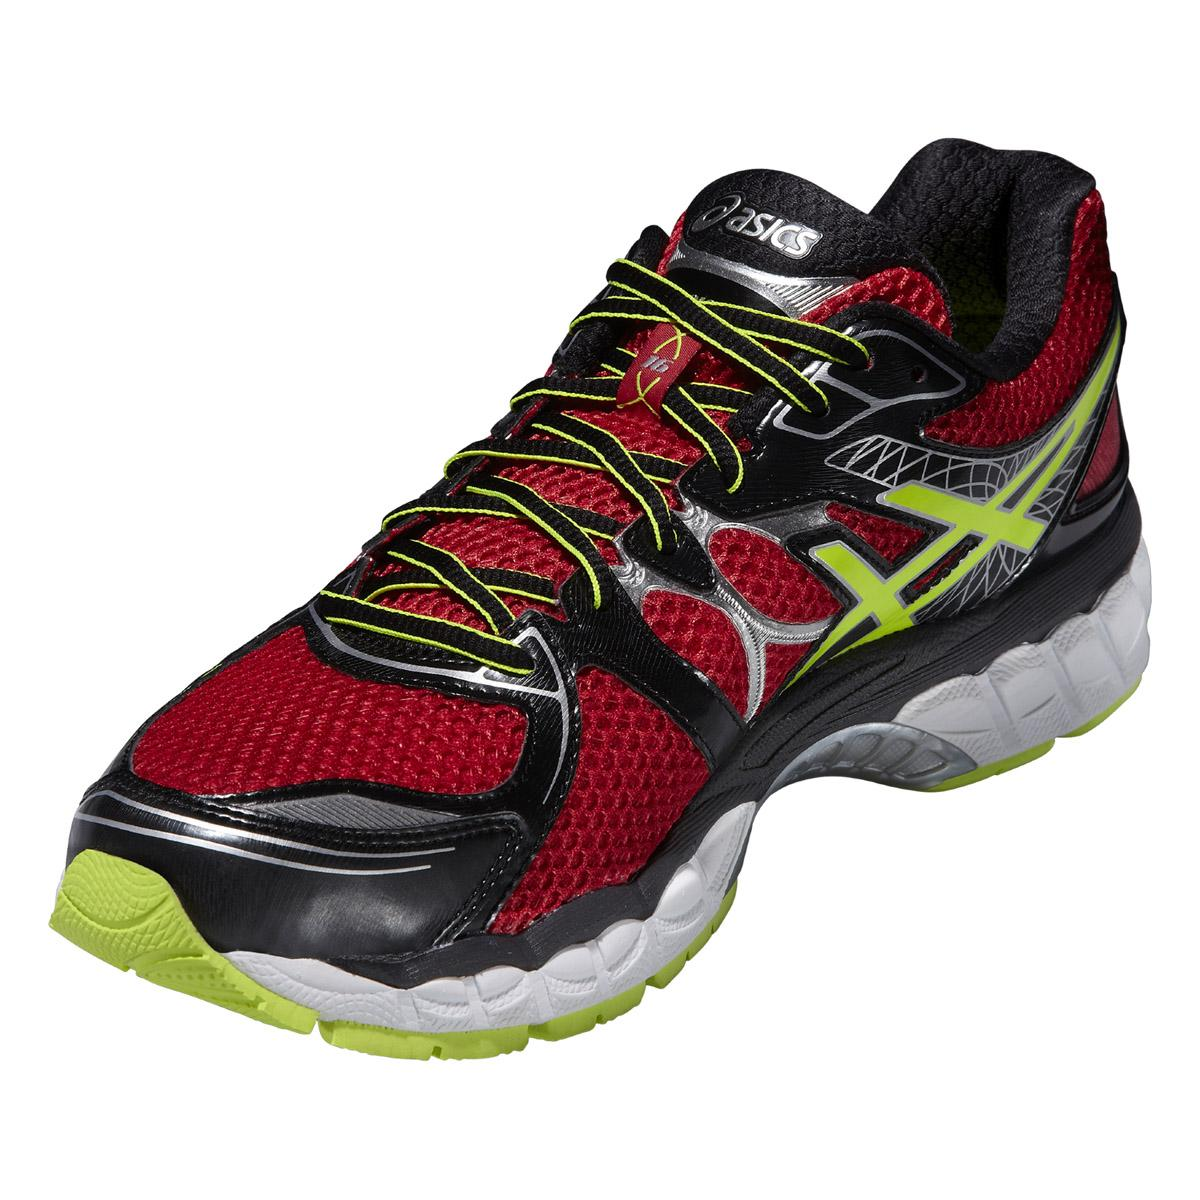 asics mens gel nimbus 16 running shoes red flash yellow. Black Bedroom Furniture Sets. Home Design Ideas